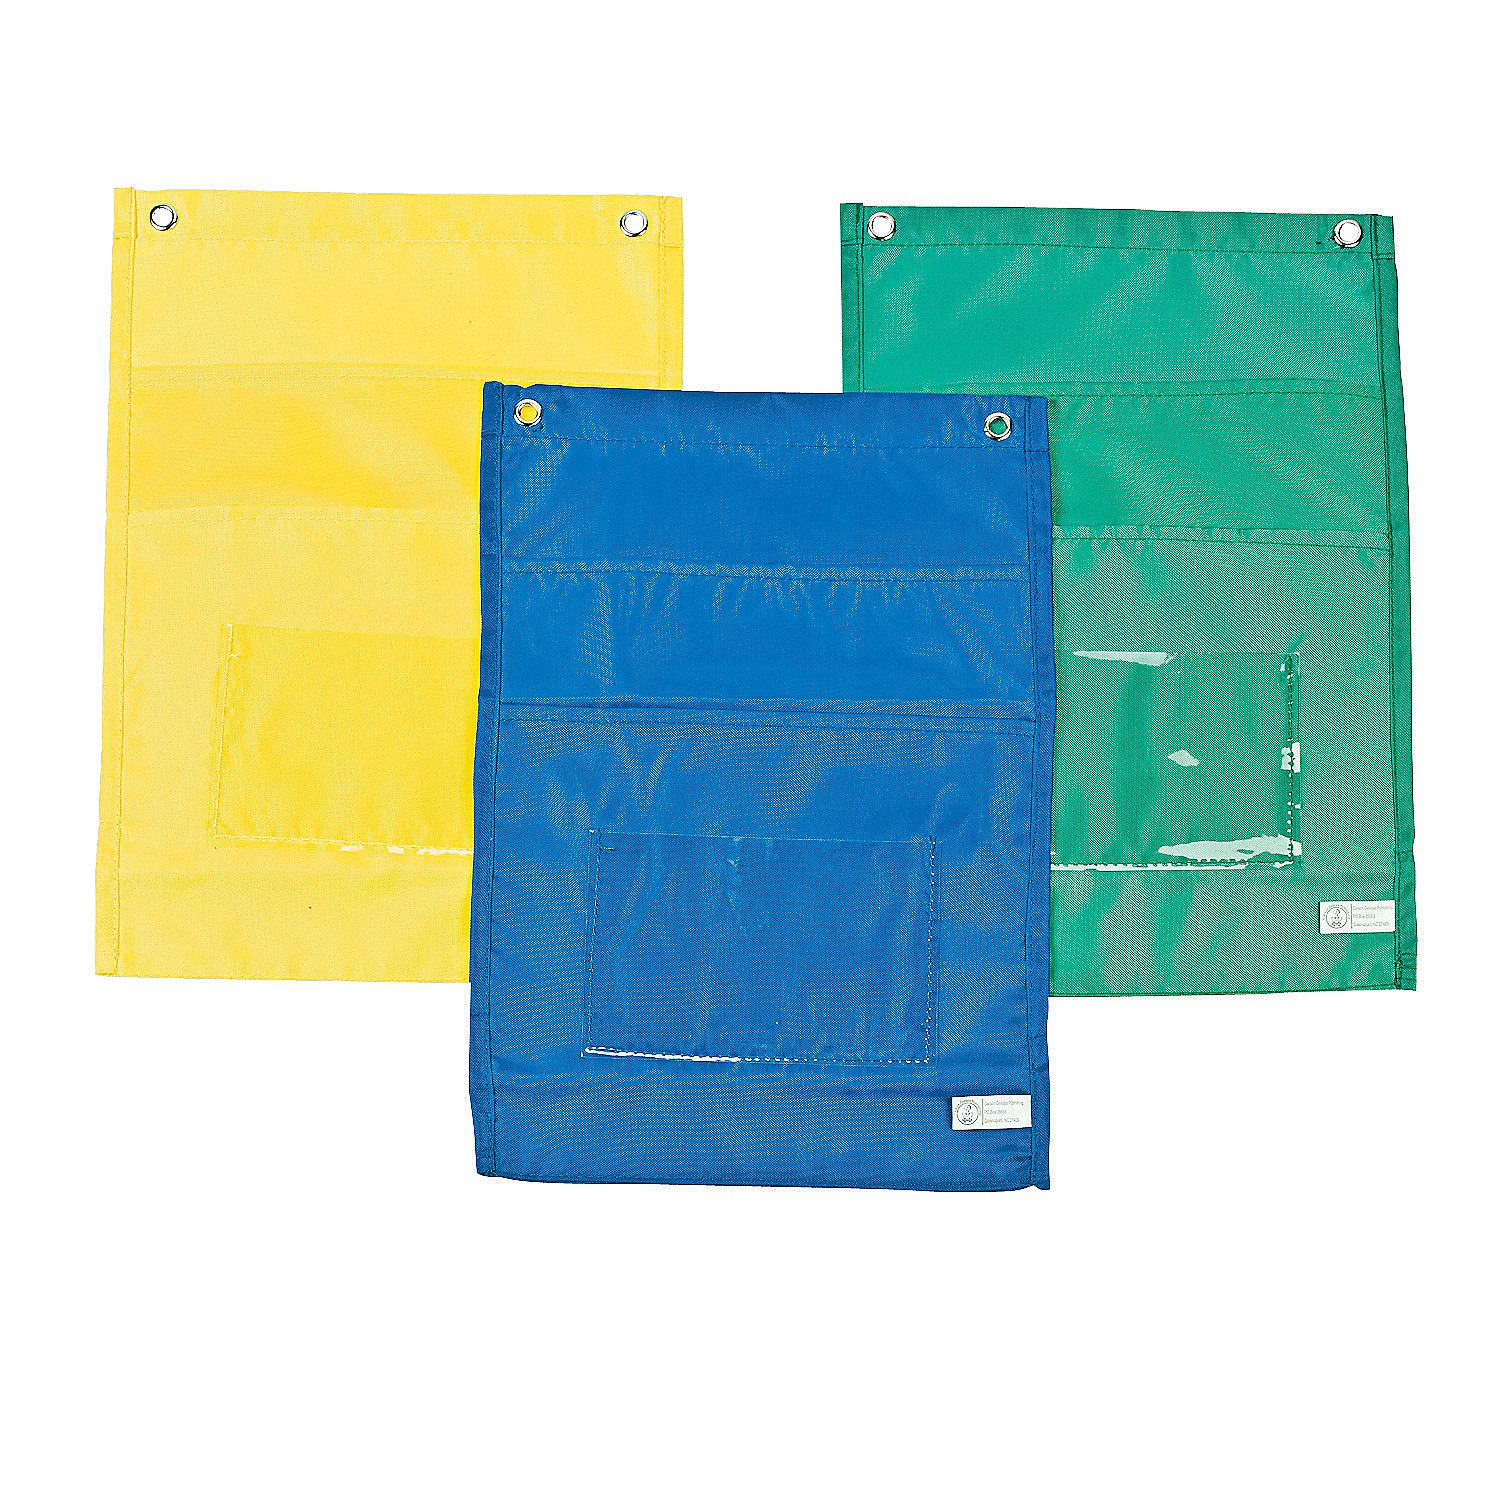 Carson-Dellosa Center Organizers - OrientalTrading.com  Thinking about these to keep homework folders handy by the door.